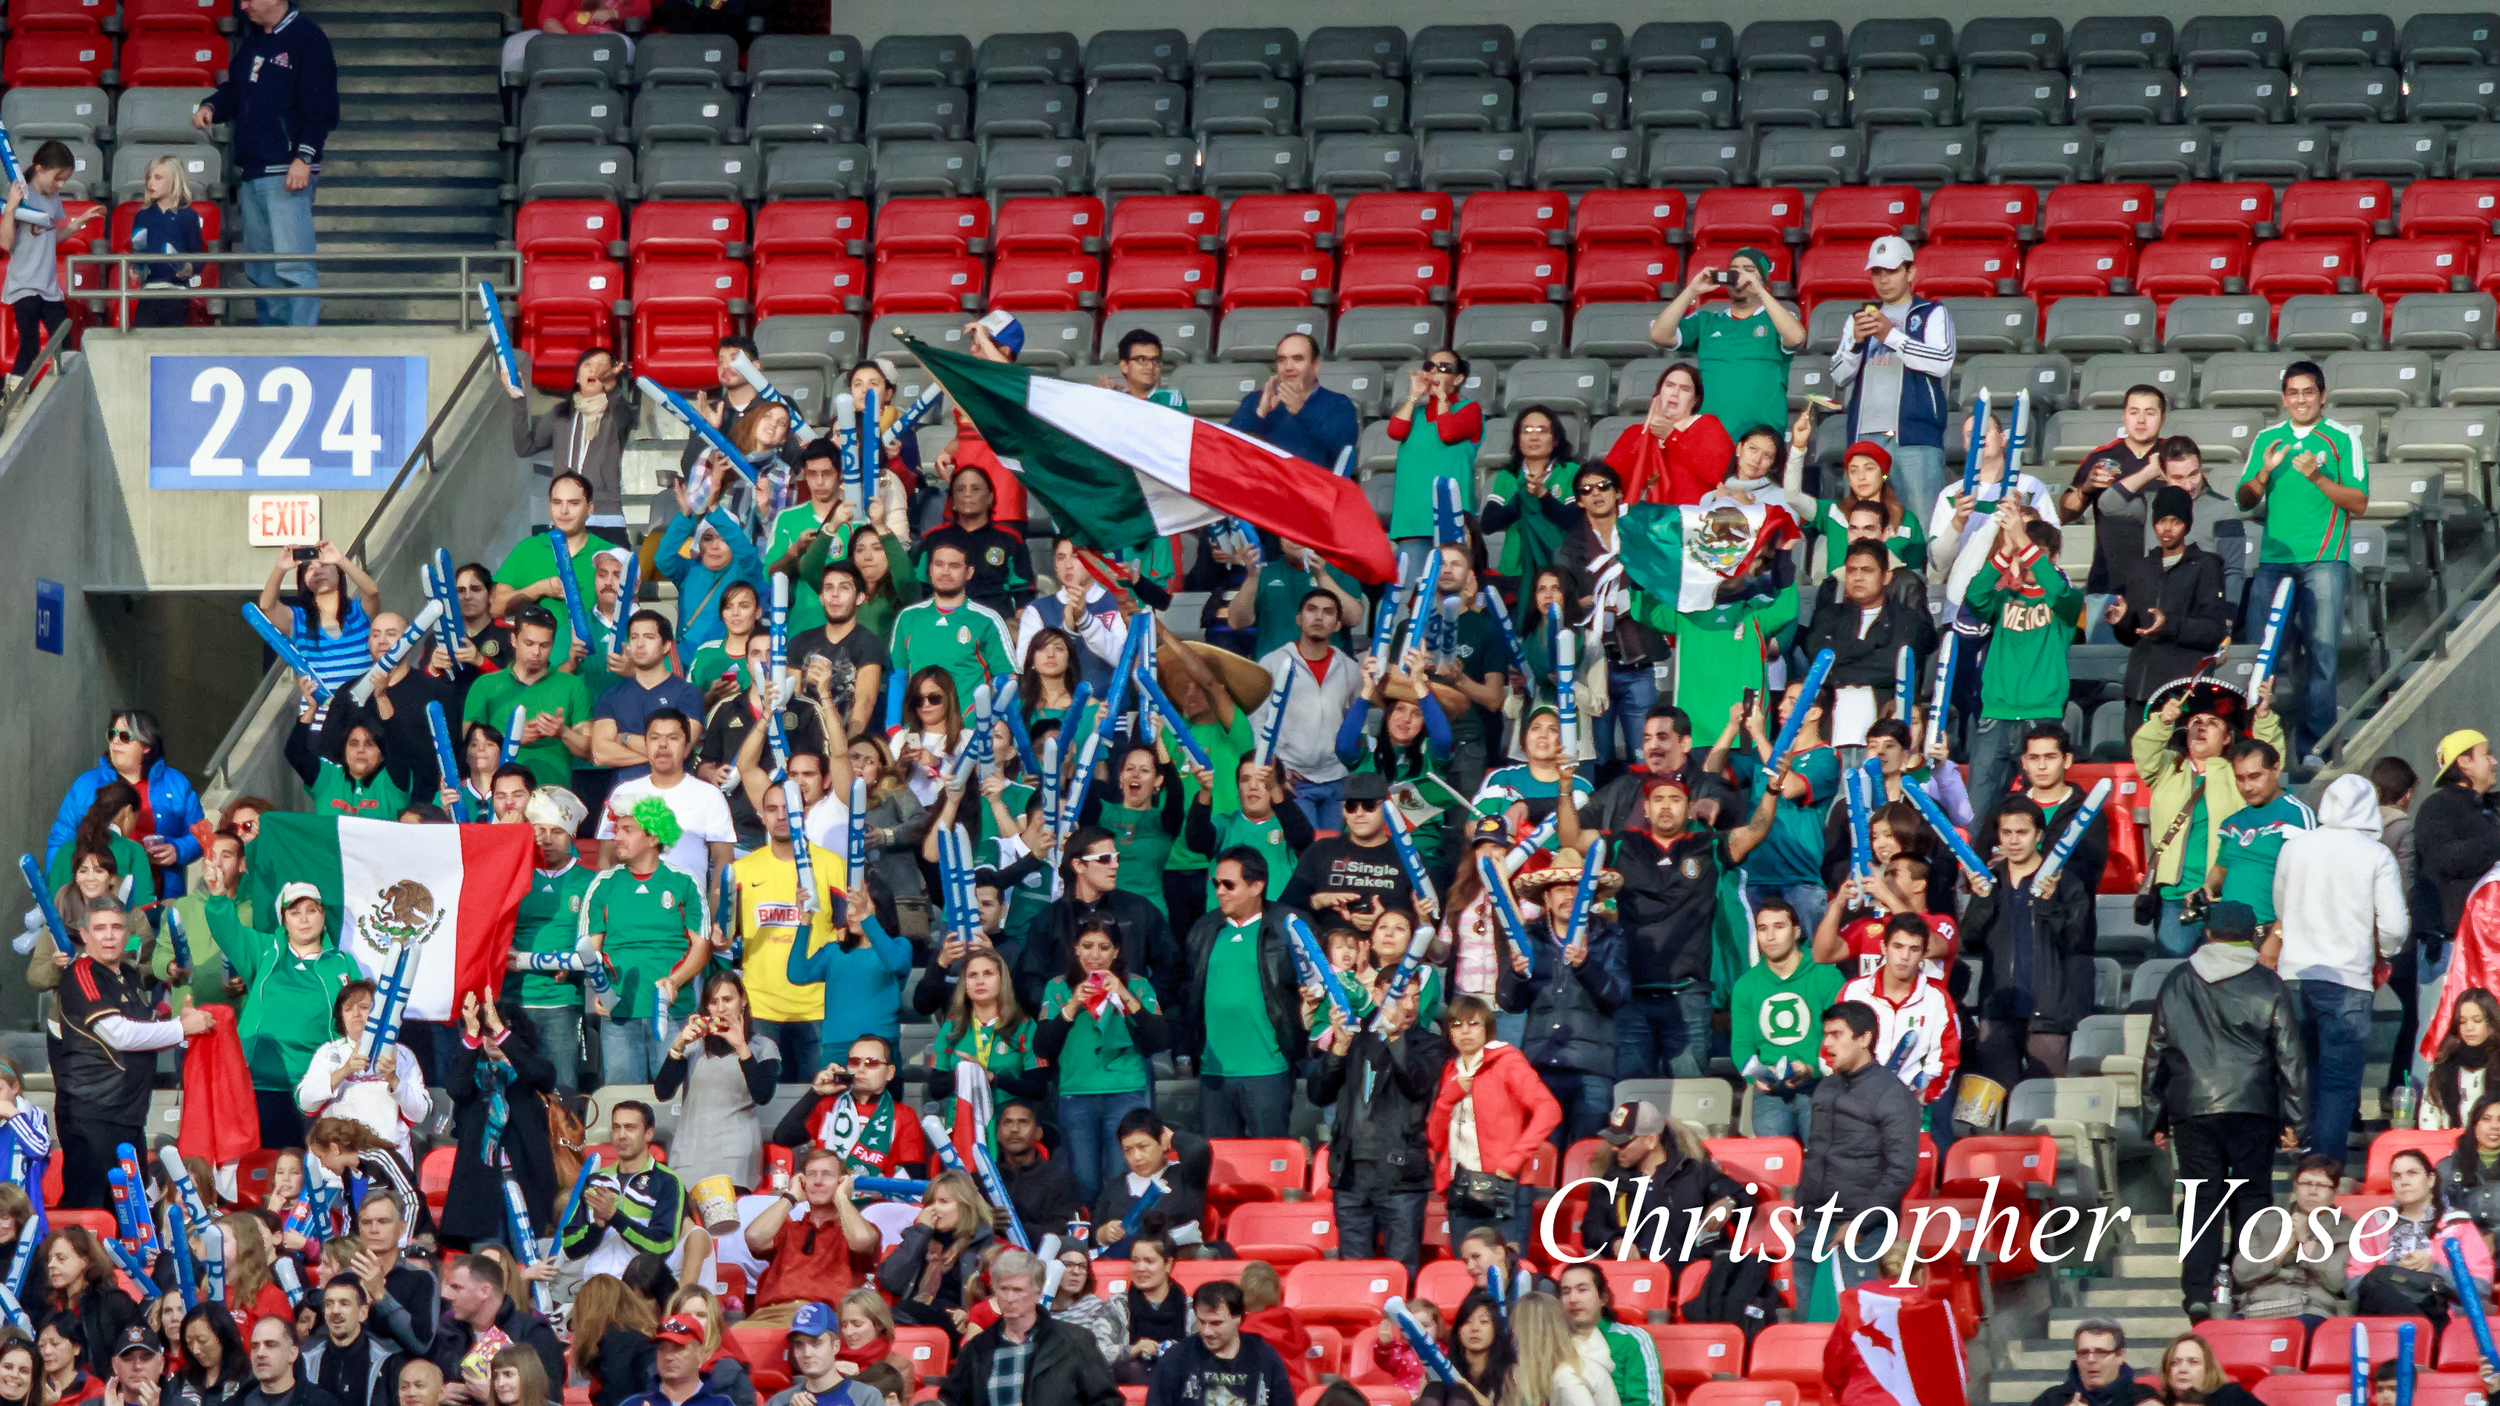 2013-11-24 Mexico Supporters.jpg